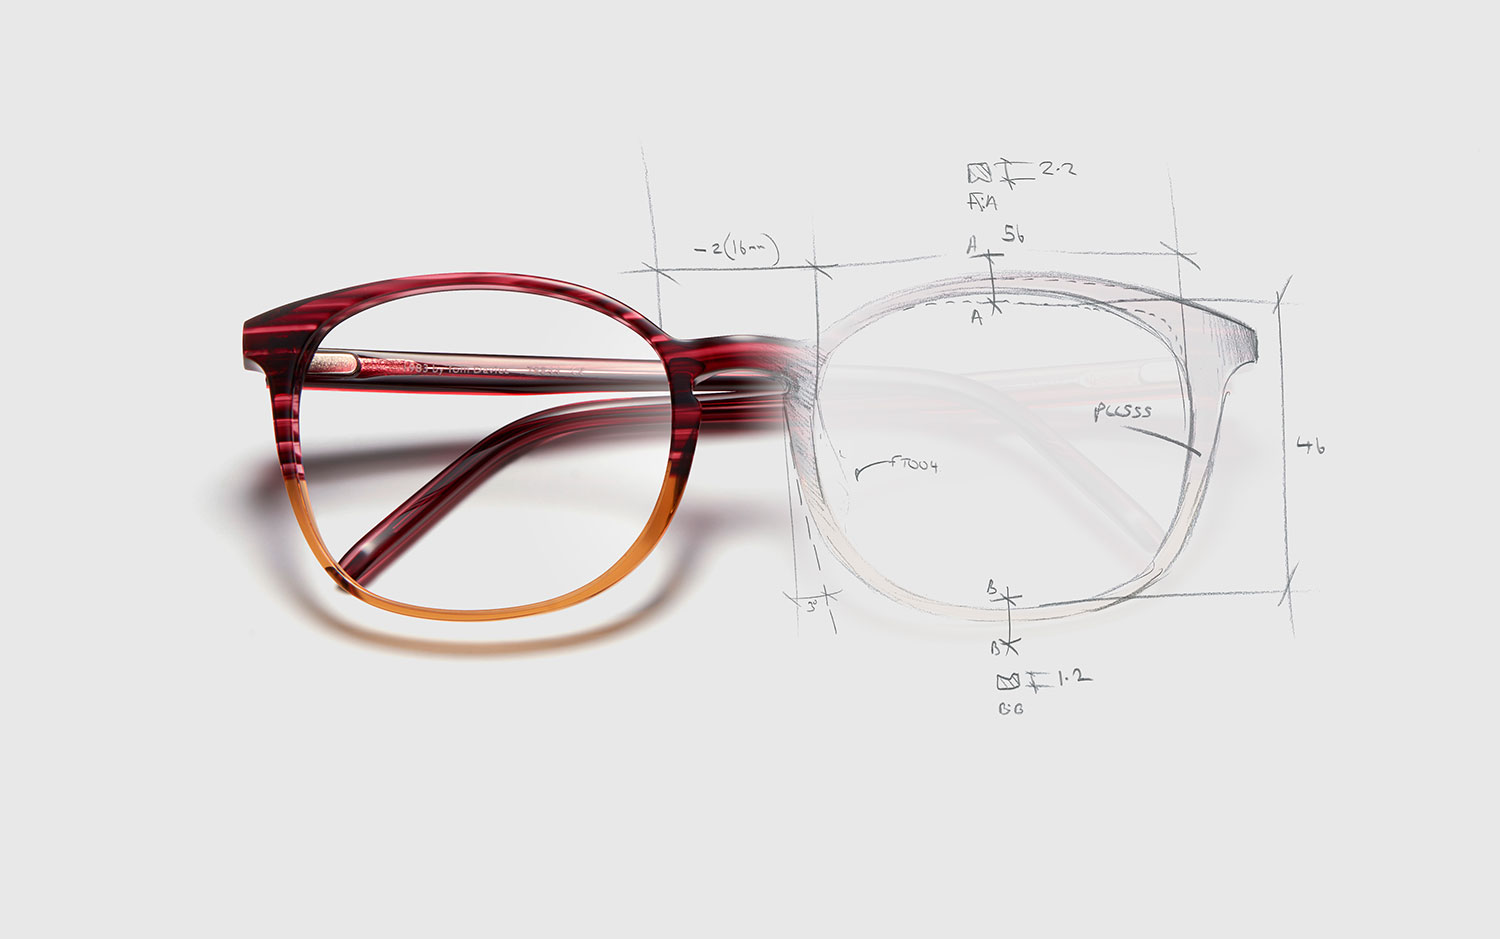 Frame sketch of 1983 acetate frame by British eyewear designer Tom Davies